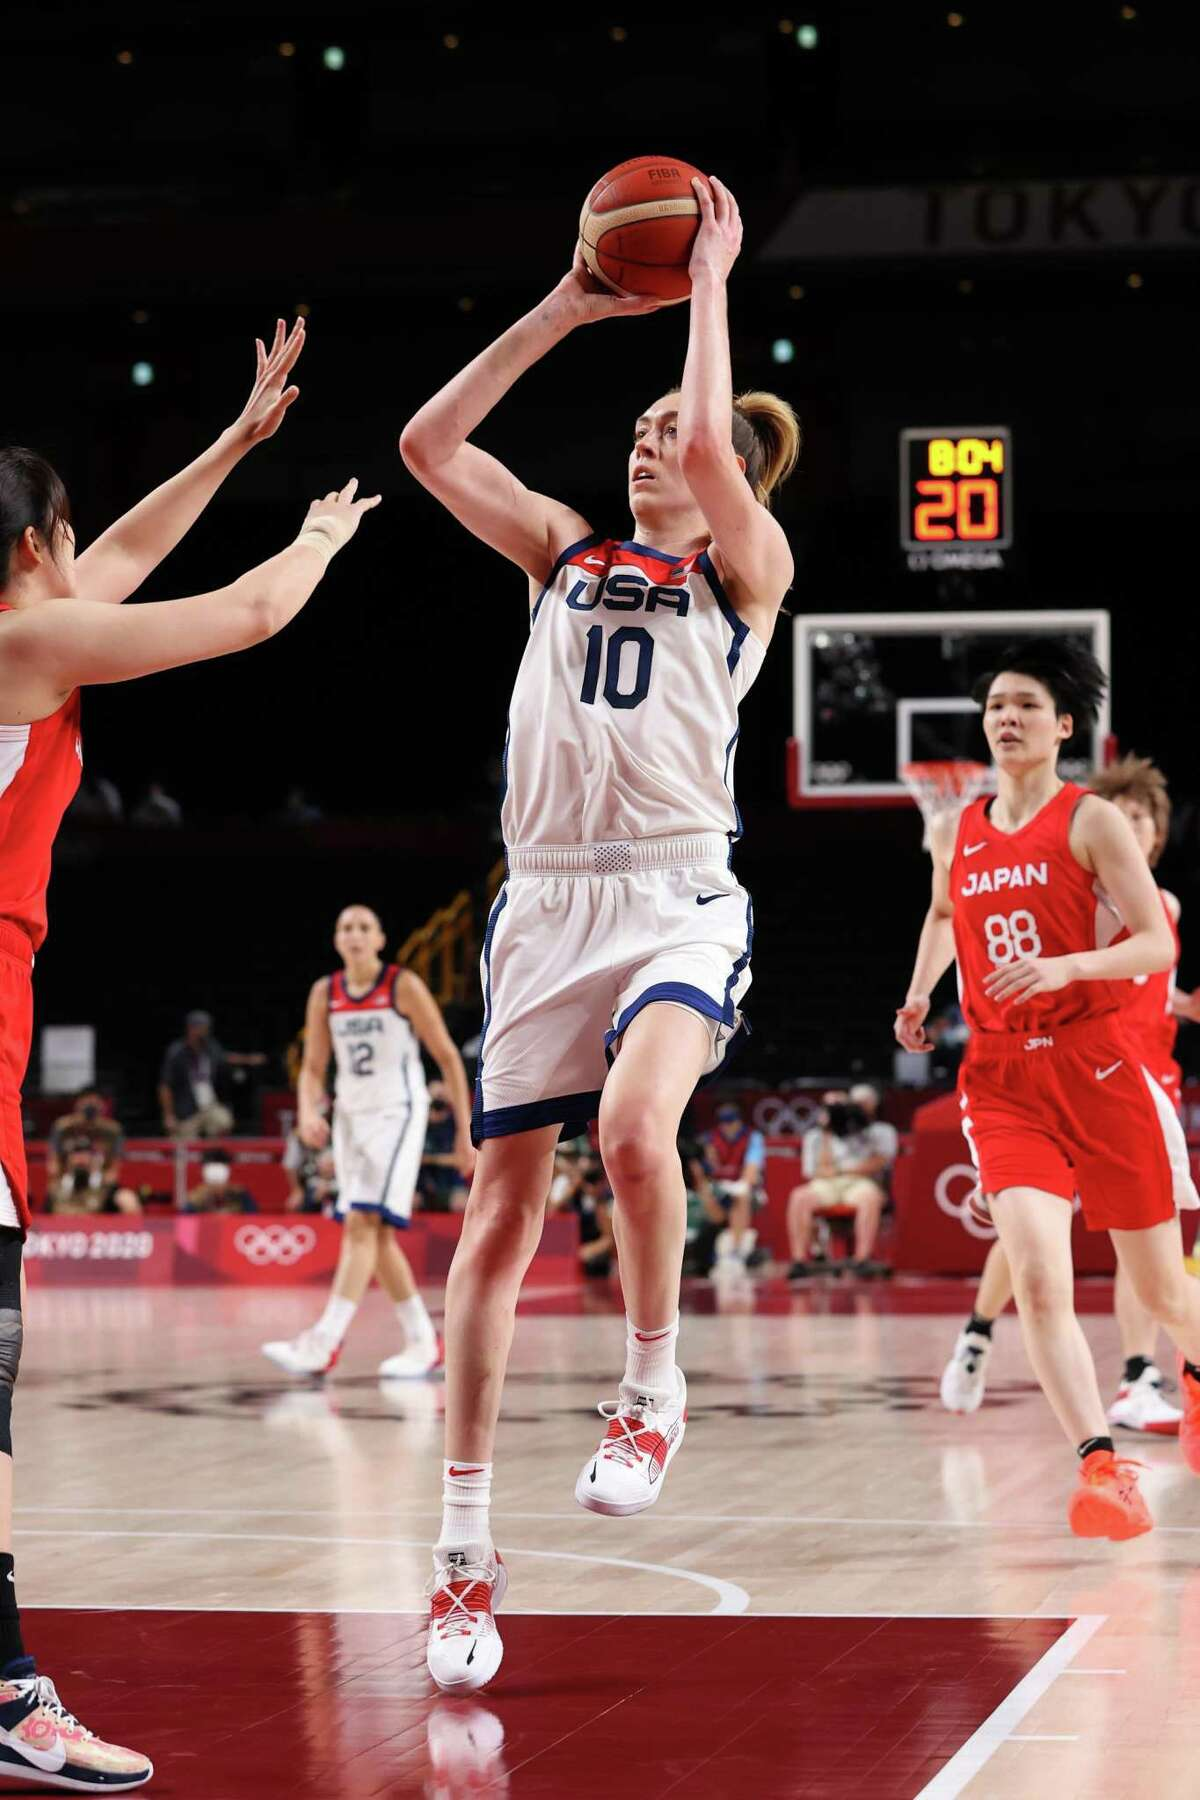 SAITAMA, JAPAN - AUGUST 08: Breanna Stewart #10 of Team United States shoots against Team Japan during the first half of the Women's Basketball final game on day sixteen of the 2020 Tokyo Olympic games at Saitama Super Arena on August 08, 2021 in Saitama, Japan. (Photo by Gregory Shamus/Getty Images)